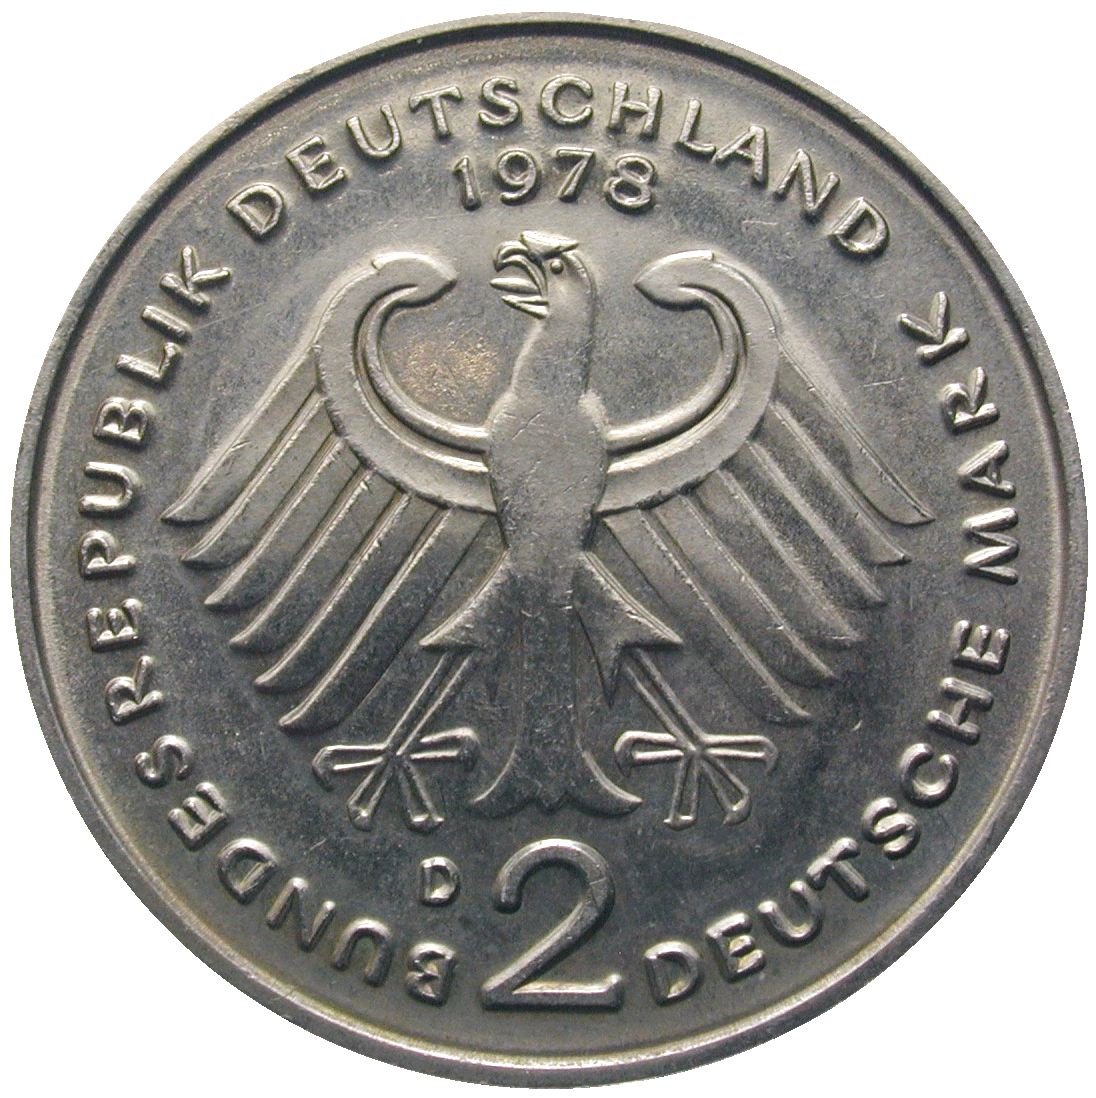 Federal Republic of Germany, 2 Deutsche Mark 1978 (obverse)